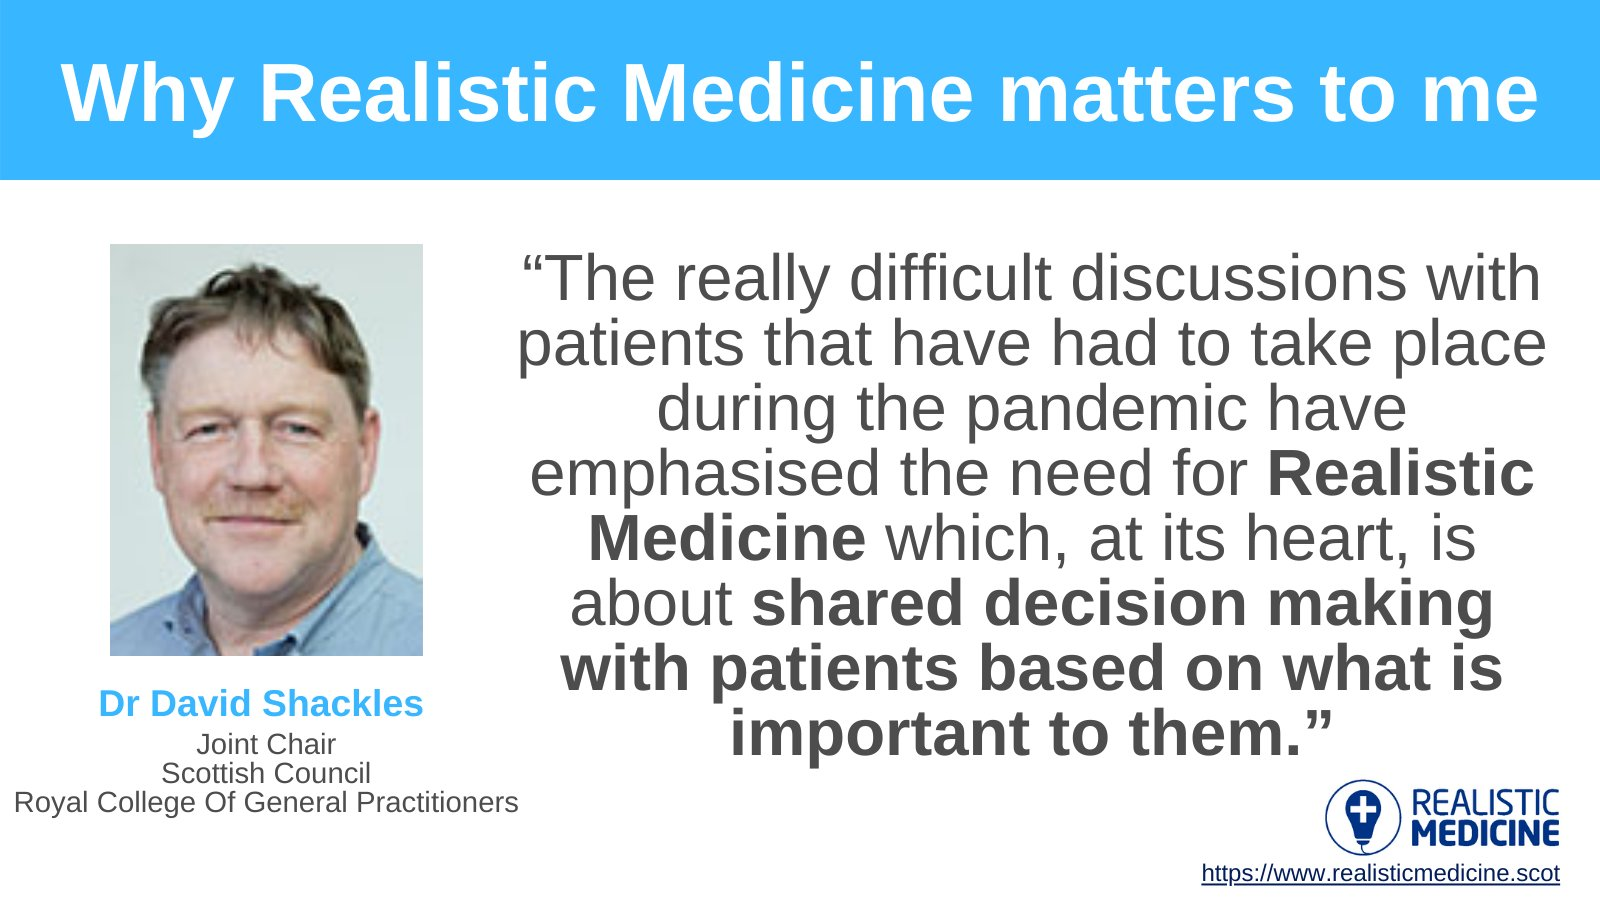 """Realistic Medicine on Twitter: """"Dr David Shackles shares his view as Joint  Chair of @RCGPScotland on #WhyRMMatters within primary care. Register now  for the CMO's Annual Report launch on 17 March: https://t.co/PMaoif3tDB  #RealisticMedicine… https ..."""